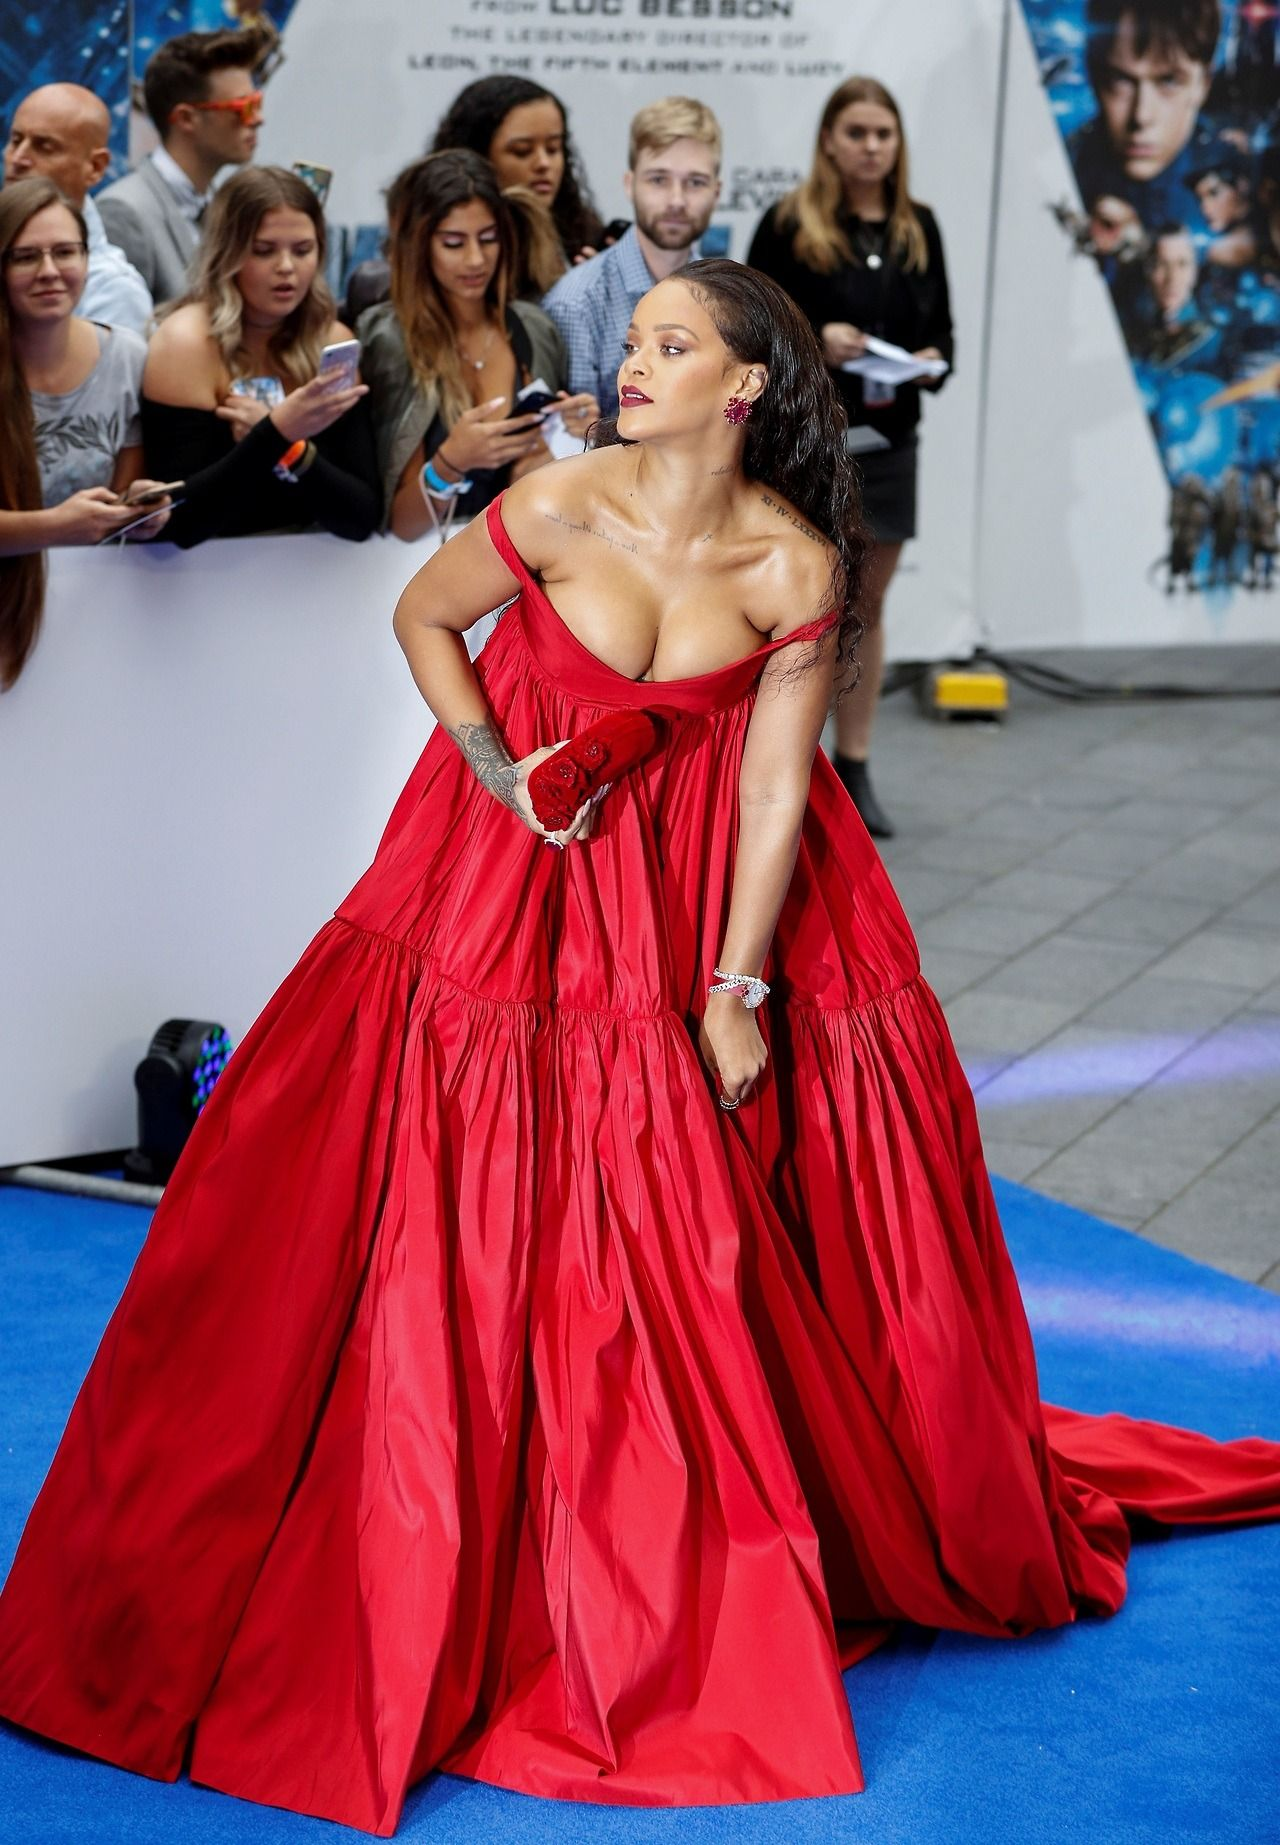 Rihanna Roter Teppich Rihanna Attends The Valerian Premiere In London July 24 Riri